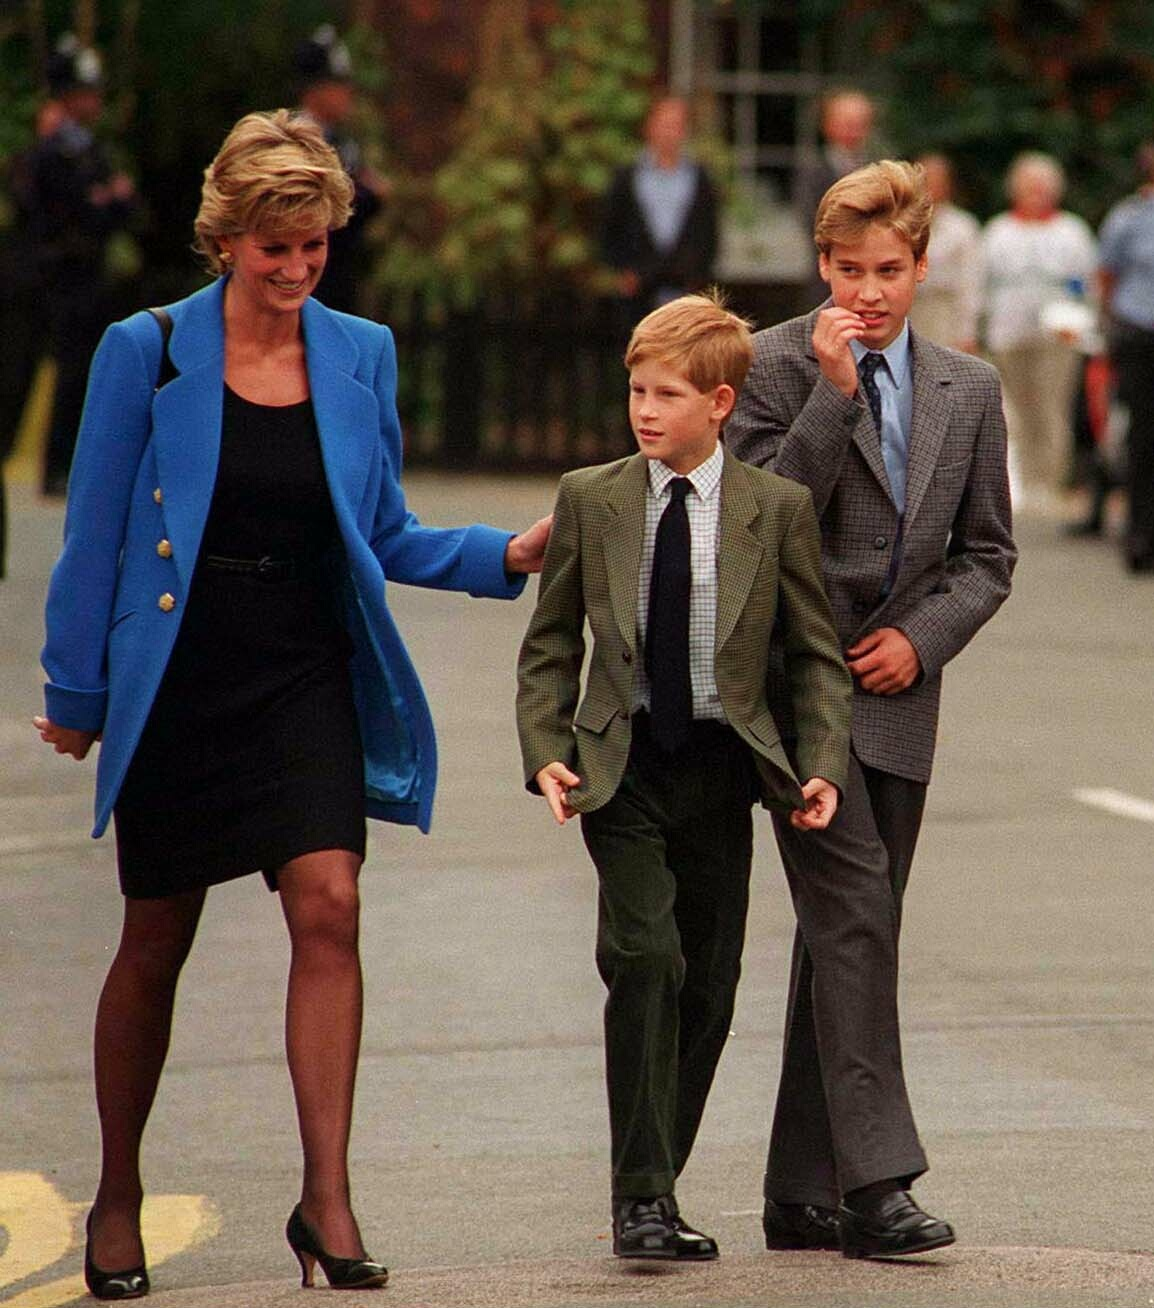 Lady Diana, Príncipe Harry, Príncipe William